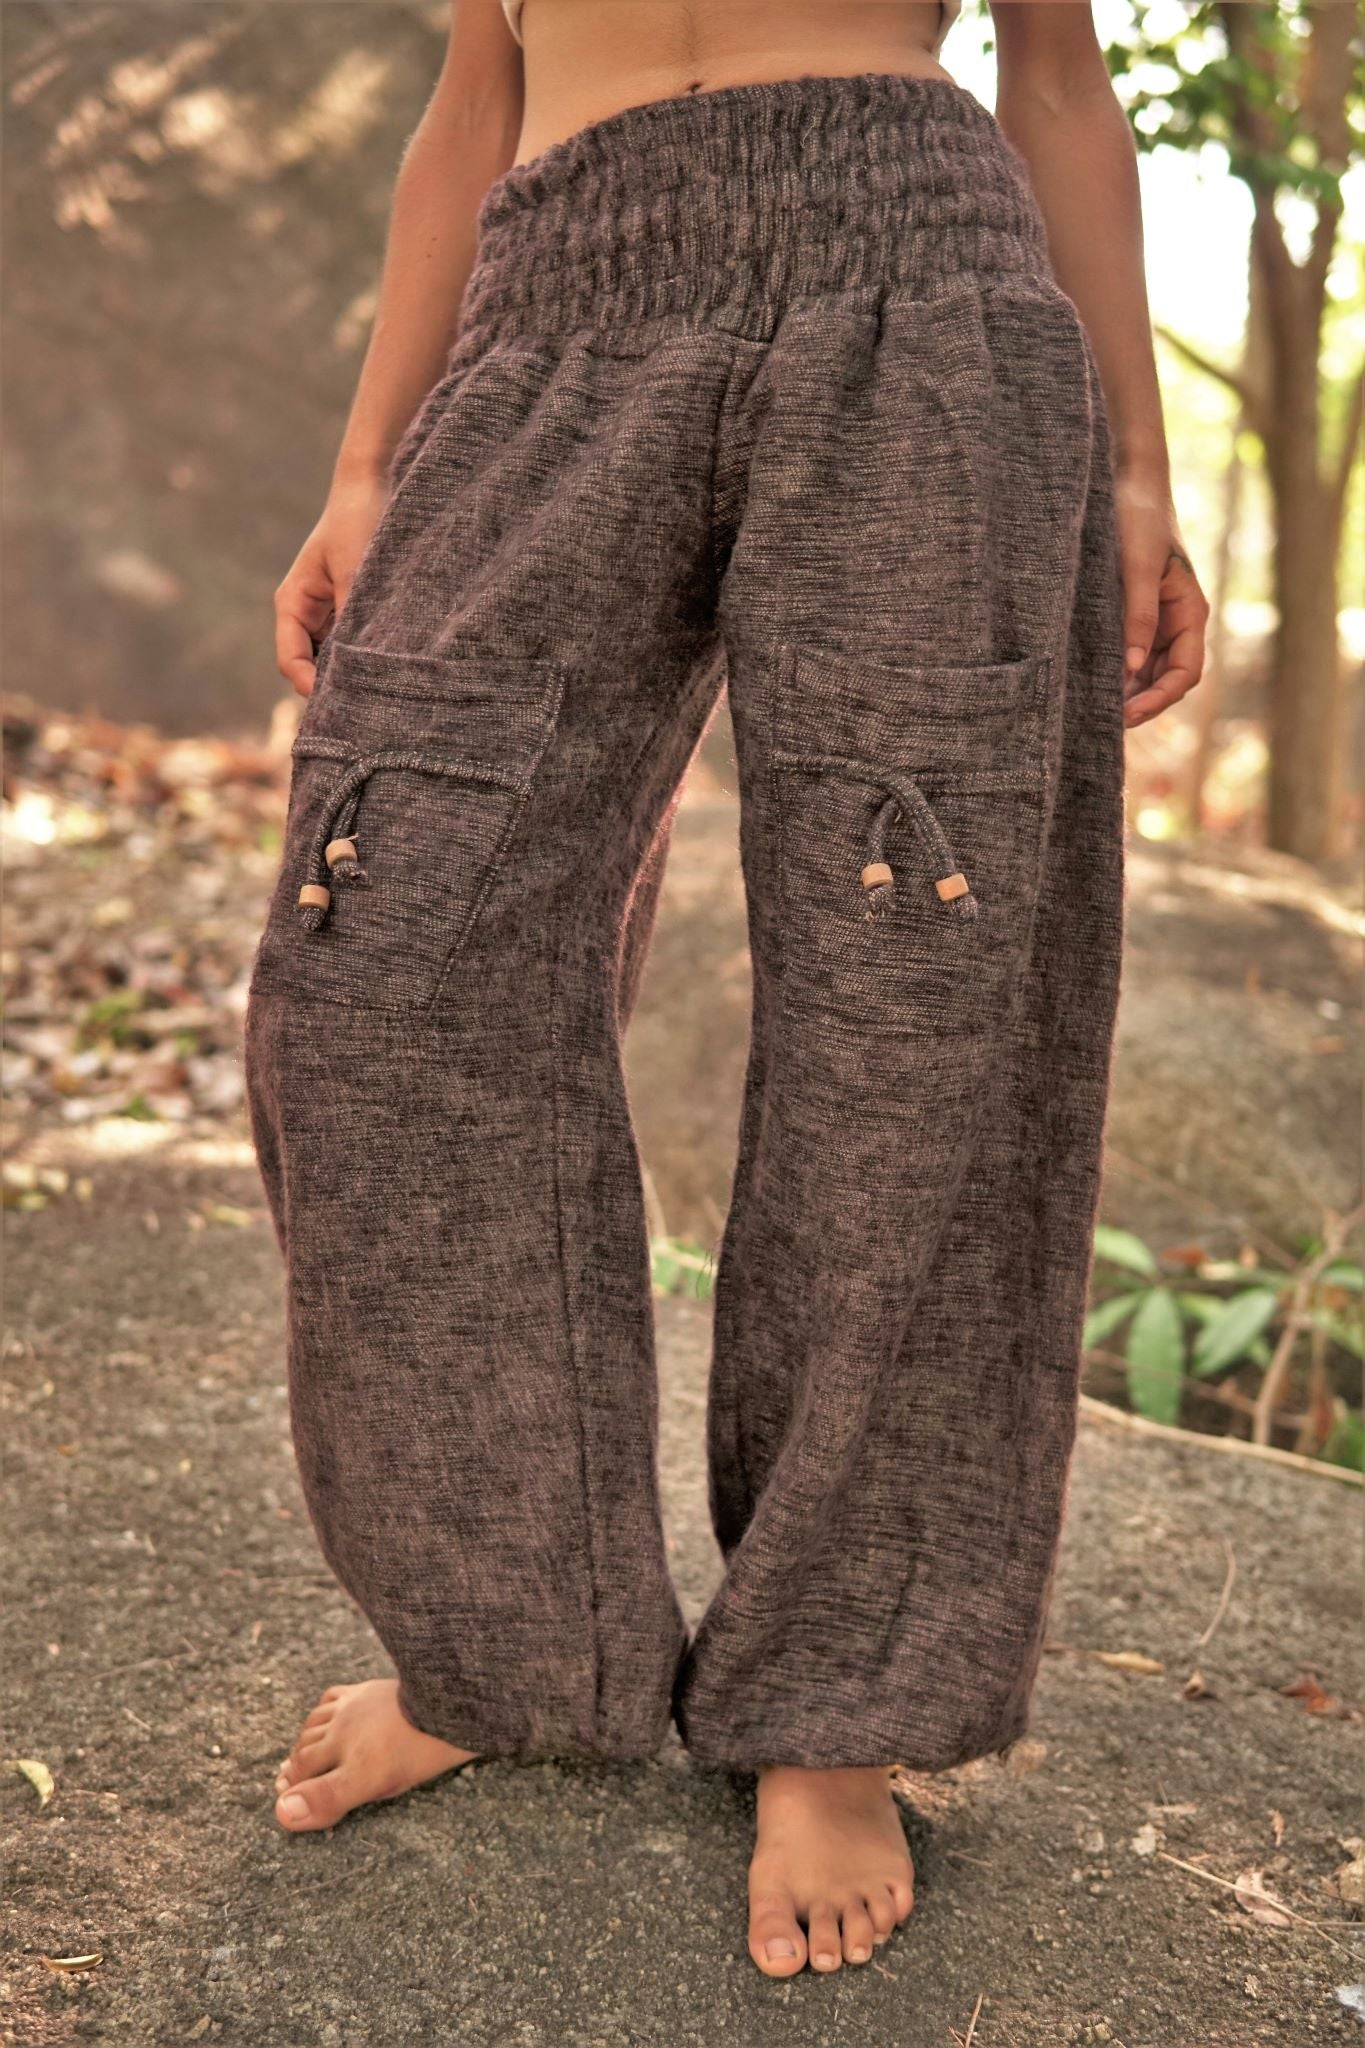 Warm High Crotch Harem Pants - Cashmilon - Brown